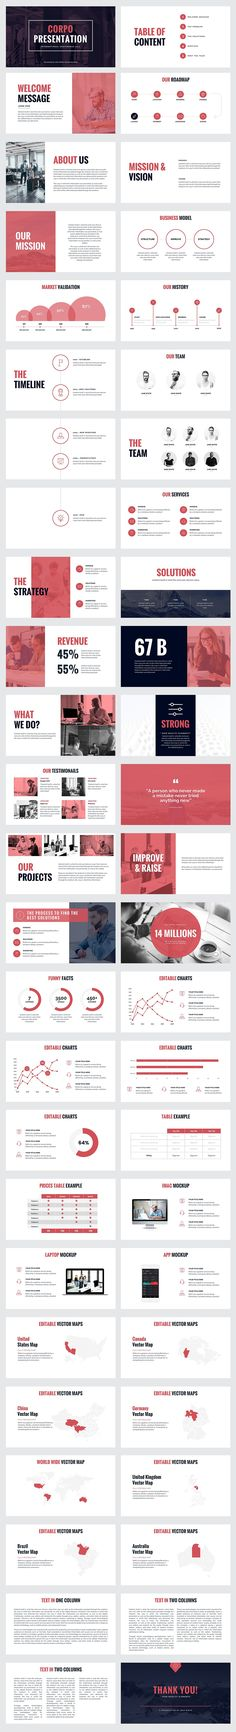 Corpo business powerpoint template is an innovative and modern looking design which will give you the professional edge during your project's presentation Powerpoint Design Templates, Ppt Design, Creative Powerpoint, Slide Design, Layout Design, Modern Powerpoint Design, Corporate Presentation, Presentation Layout, Presentation Slides